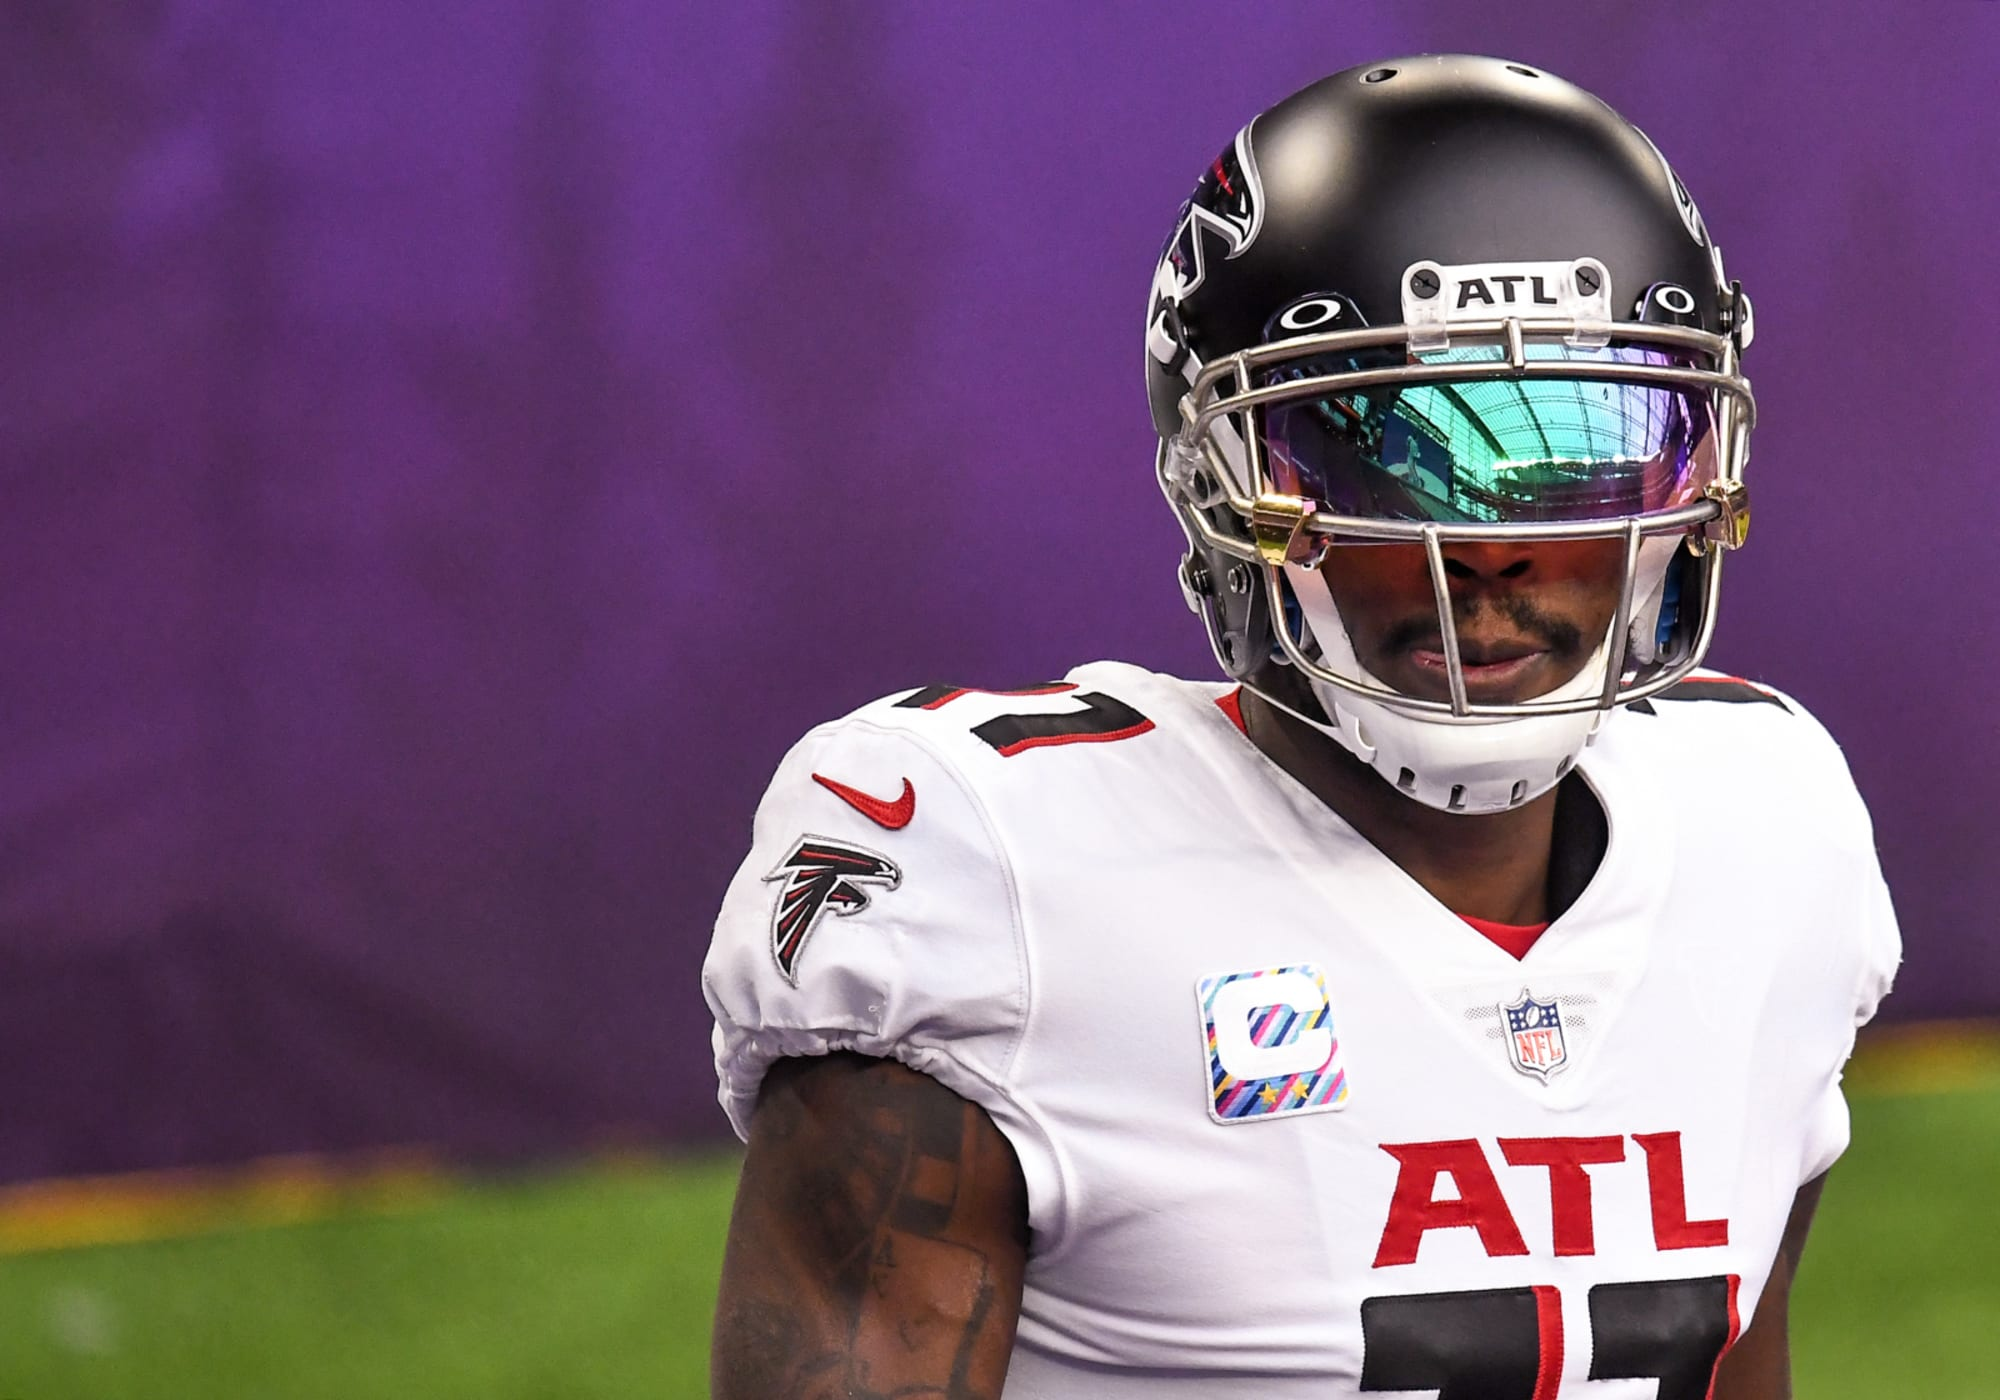 Falcons make ominous decision to leave Julio Jones out of schedule wallpaper